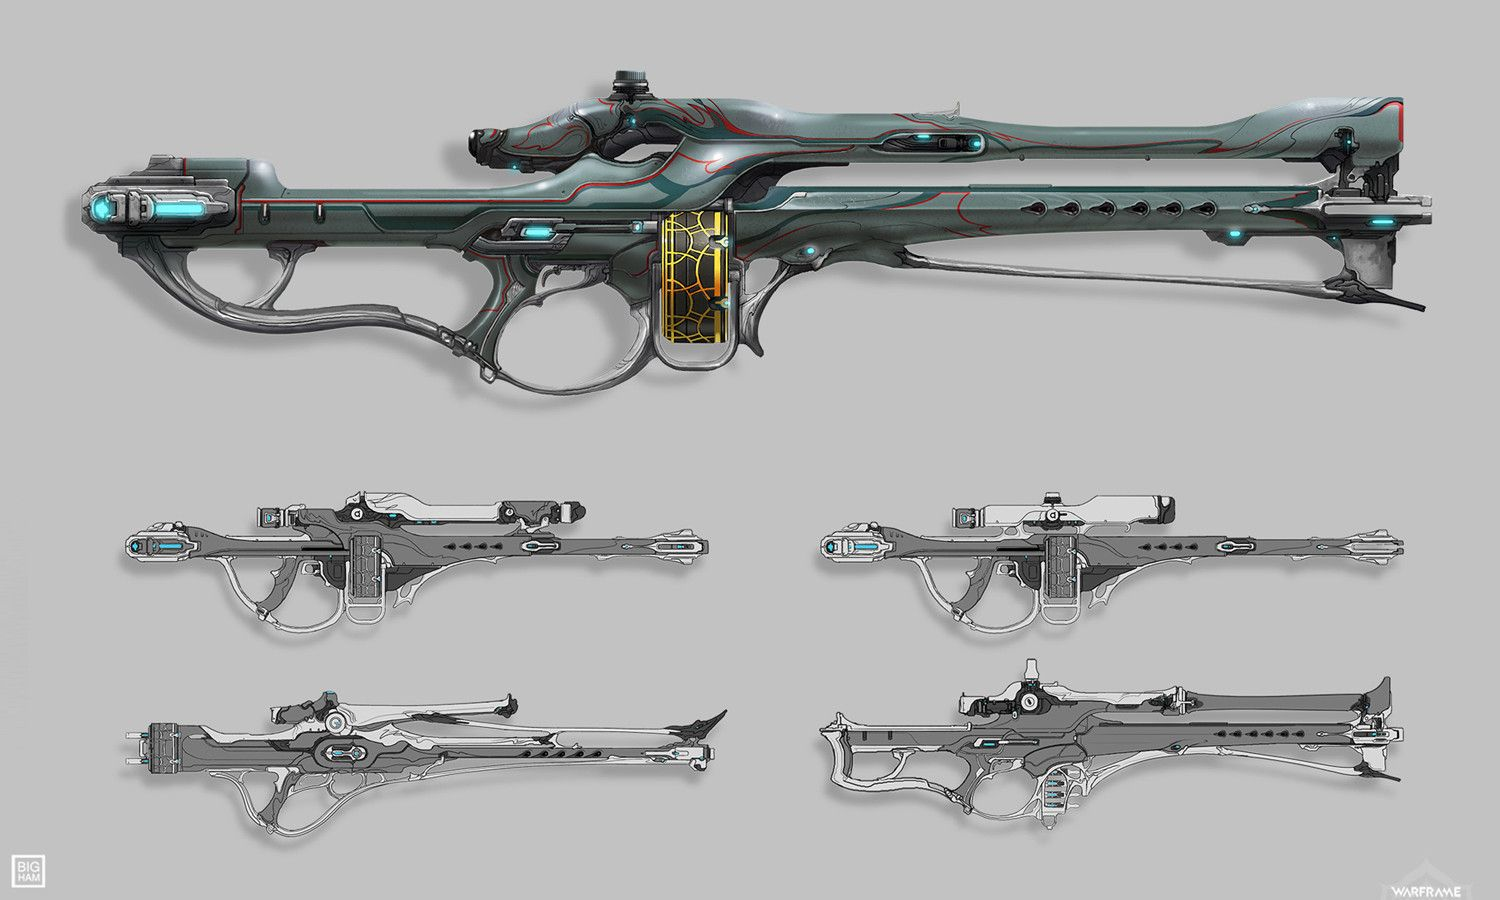 Warframe: How to Mod Weapons | GameWatcher